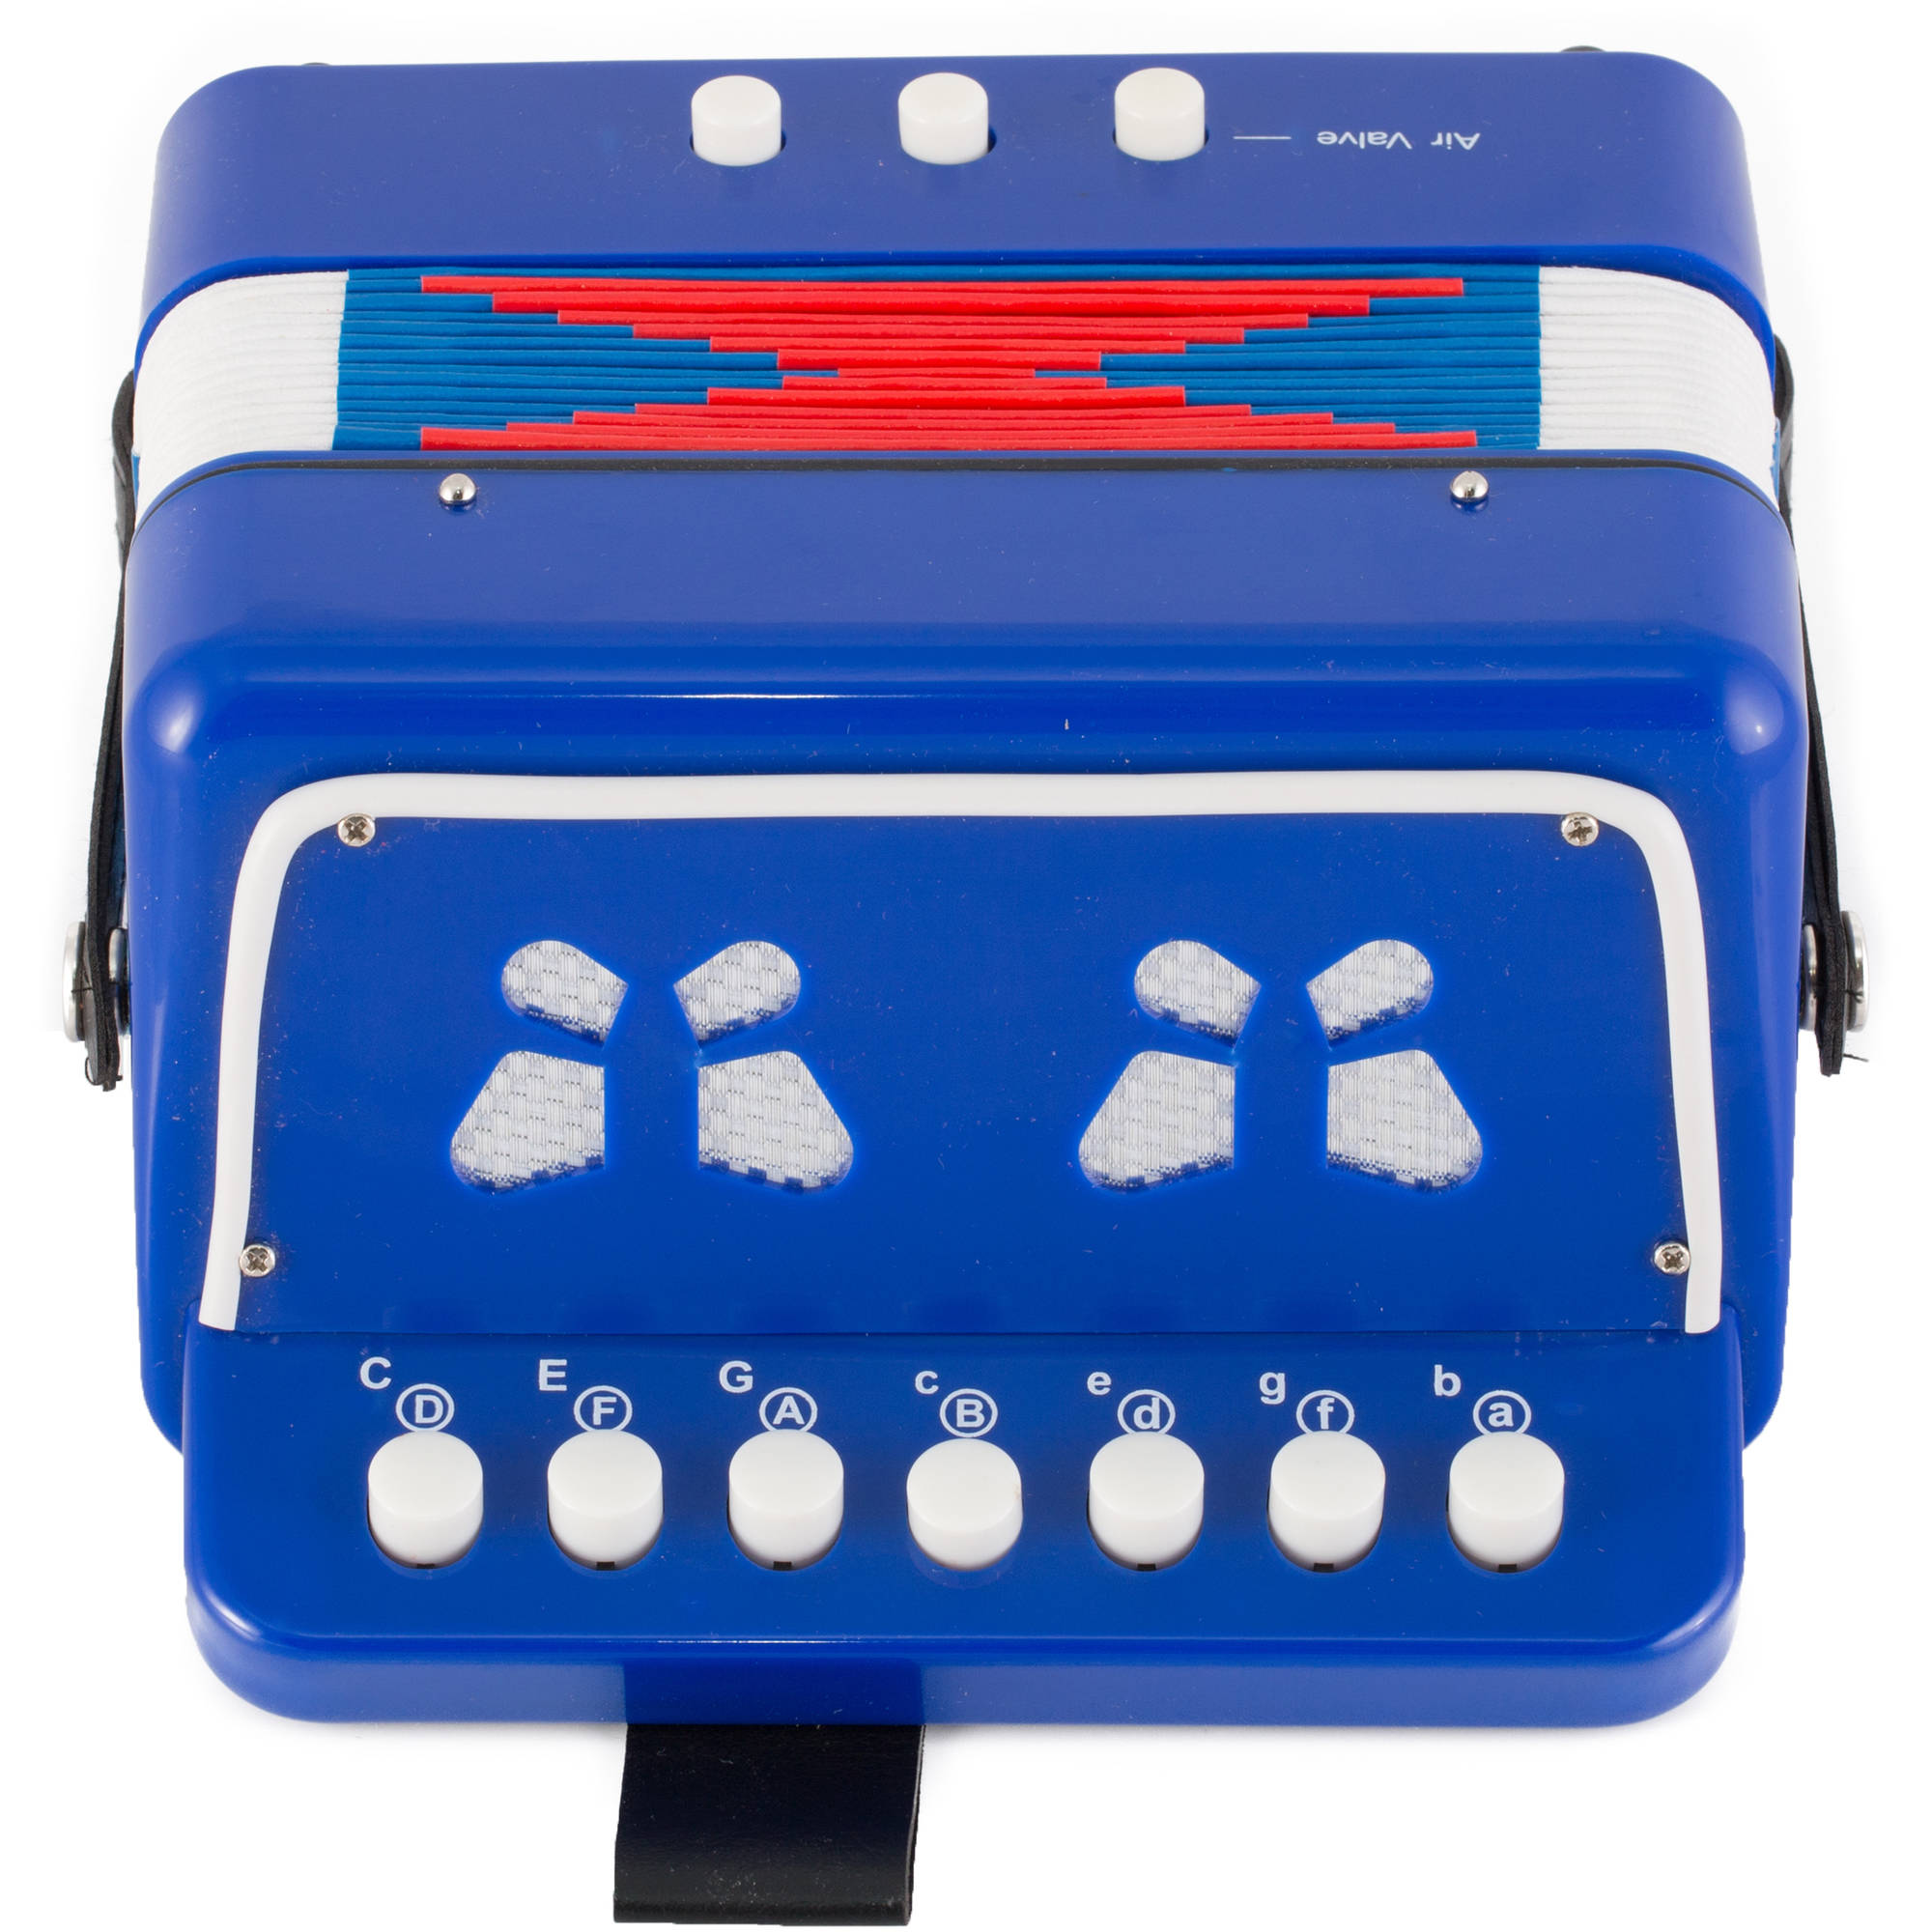 Kayata 7 Keys 2 Bass Botton Accordion for Kids Children Educational Music Instrument Toy, Blue